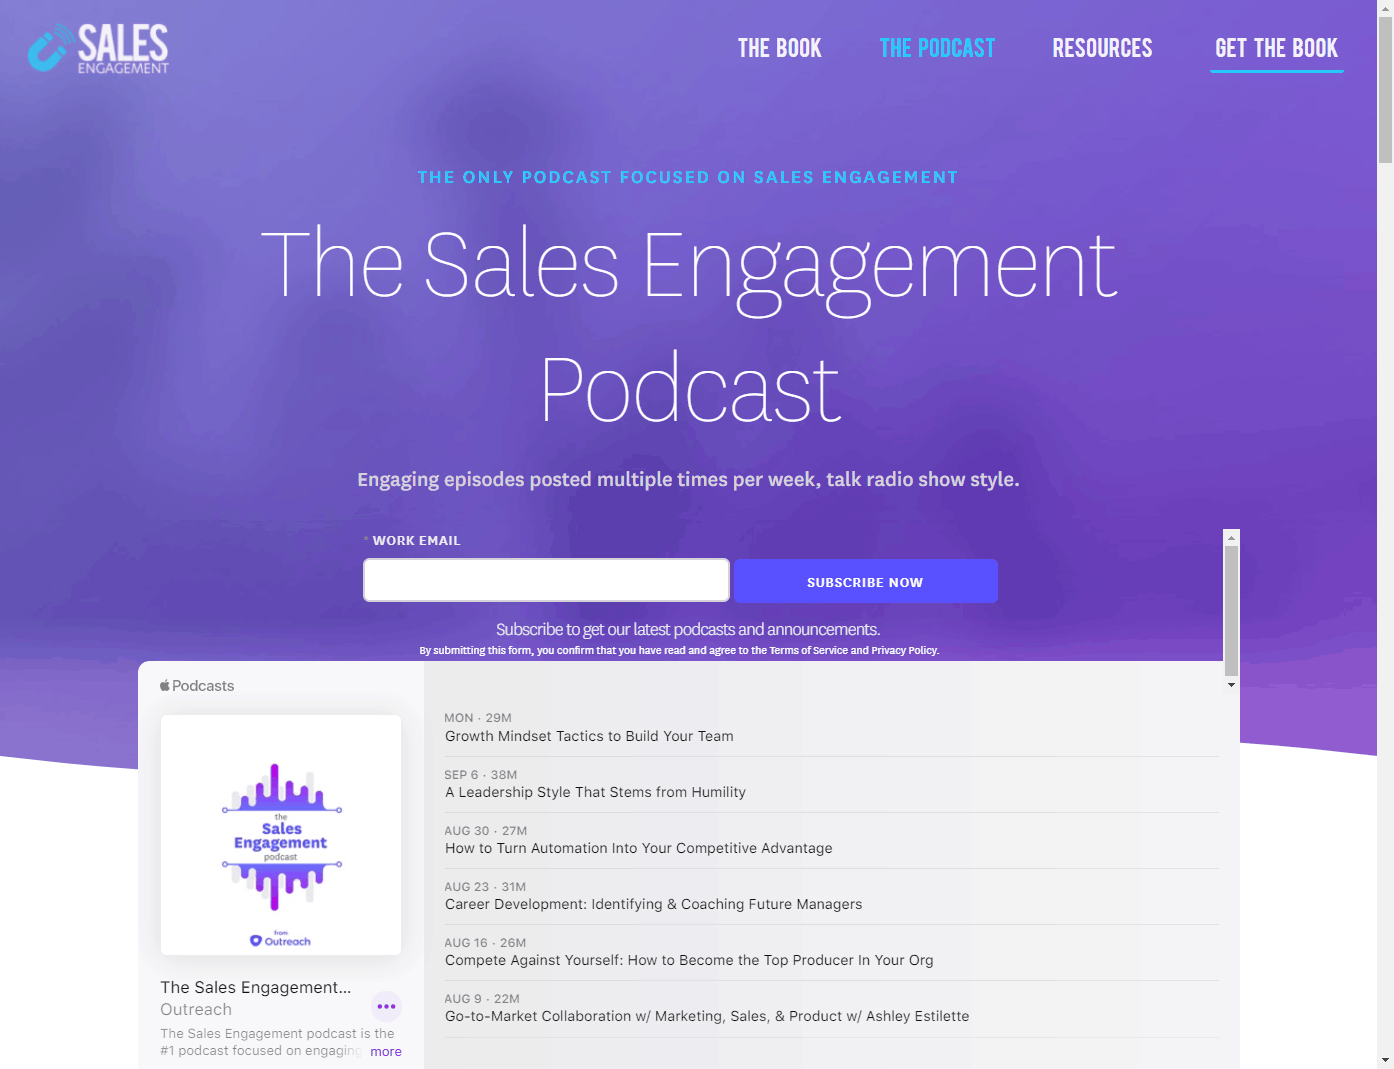 The Sales Engagement Podcast example for emailing your podcast with Marketo